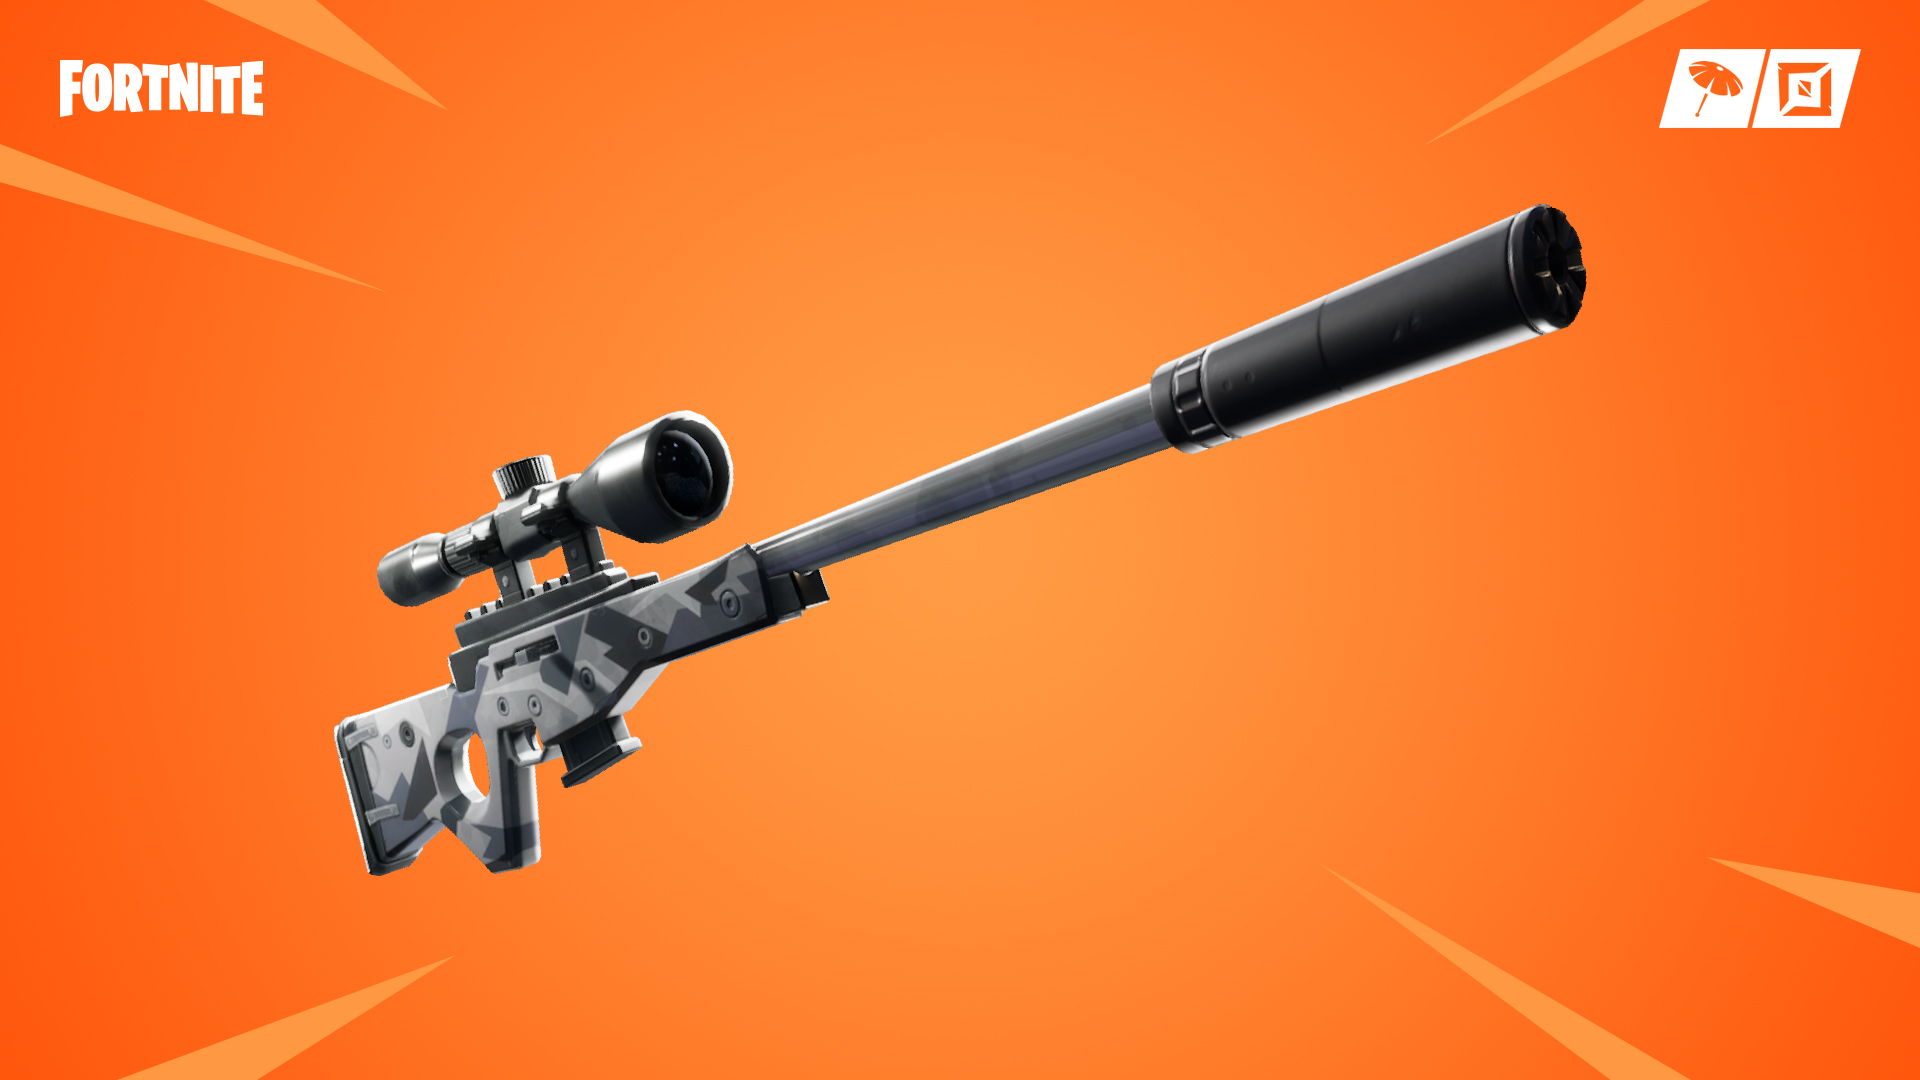 Photo of Fortnite 7.10 content update #3 adds a suppressed sniper rifle, brings back the dual pistols